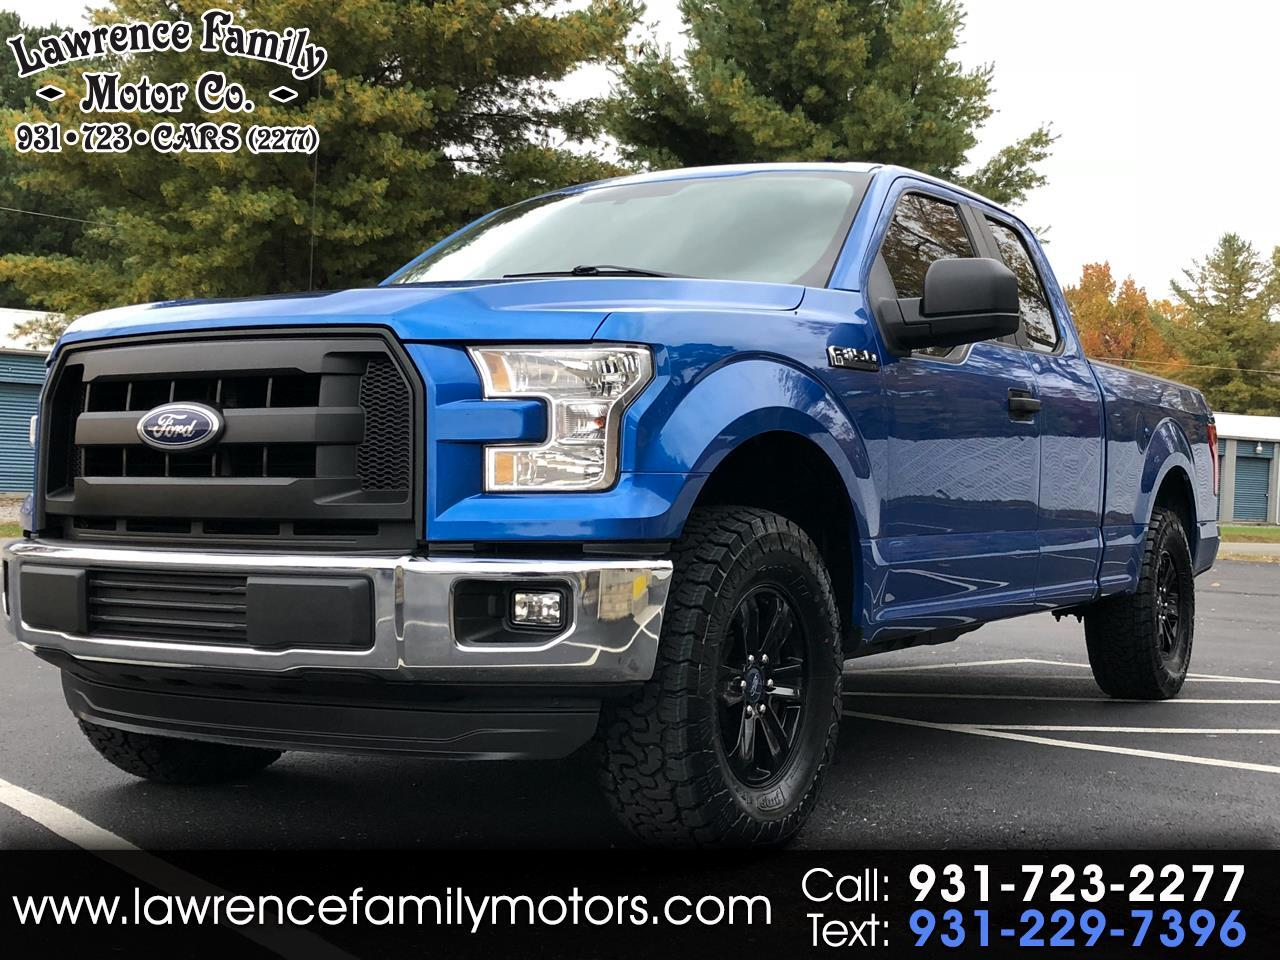 2015 Ford F-150 XL Reg. Cab Long Bed 2WD